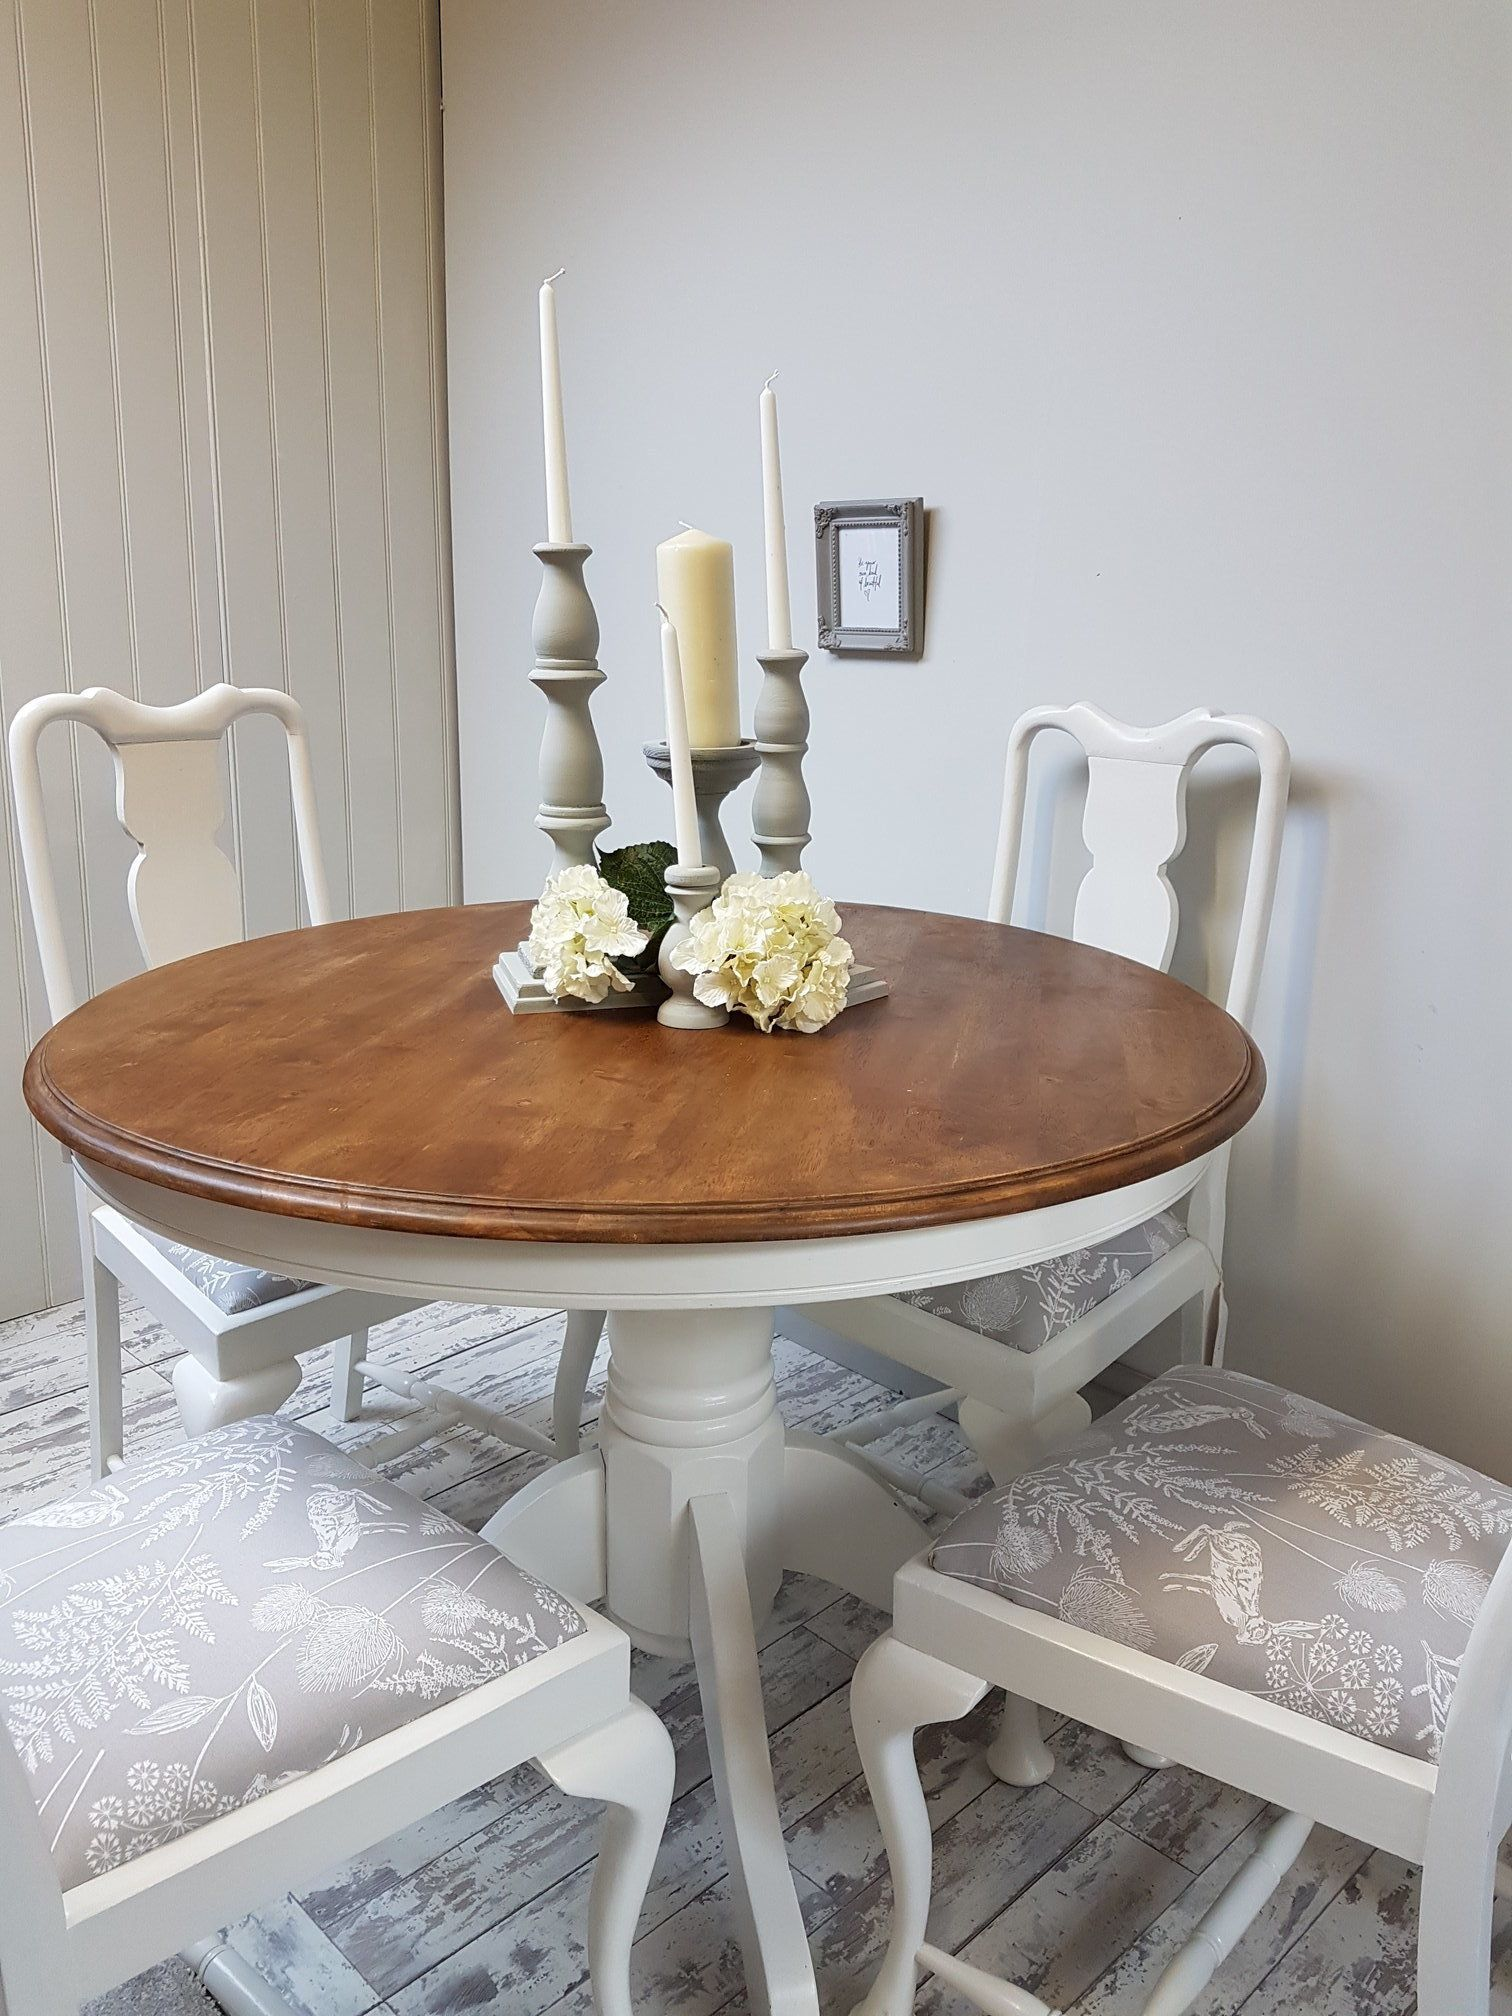 Circular Dining/Kitchen Table Painted White With Natural ...